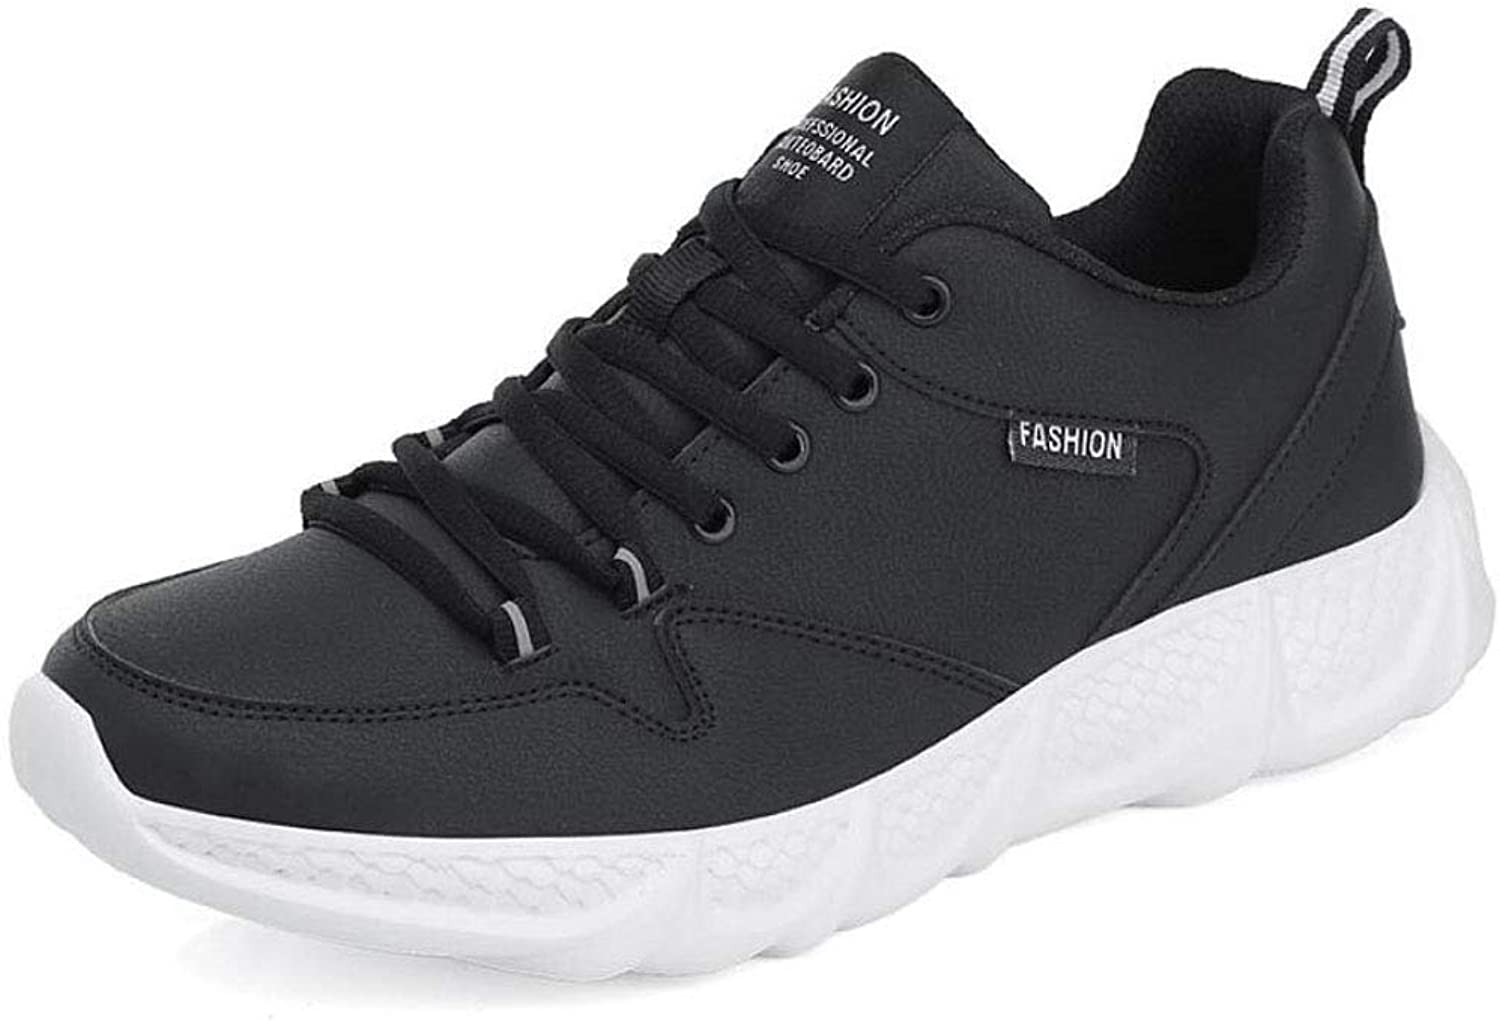 ZIXUAP Fashion Sneakers Mens Running shoes Casual Walking Sneakers Workout Athletic Gym shoes for Men